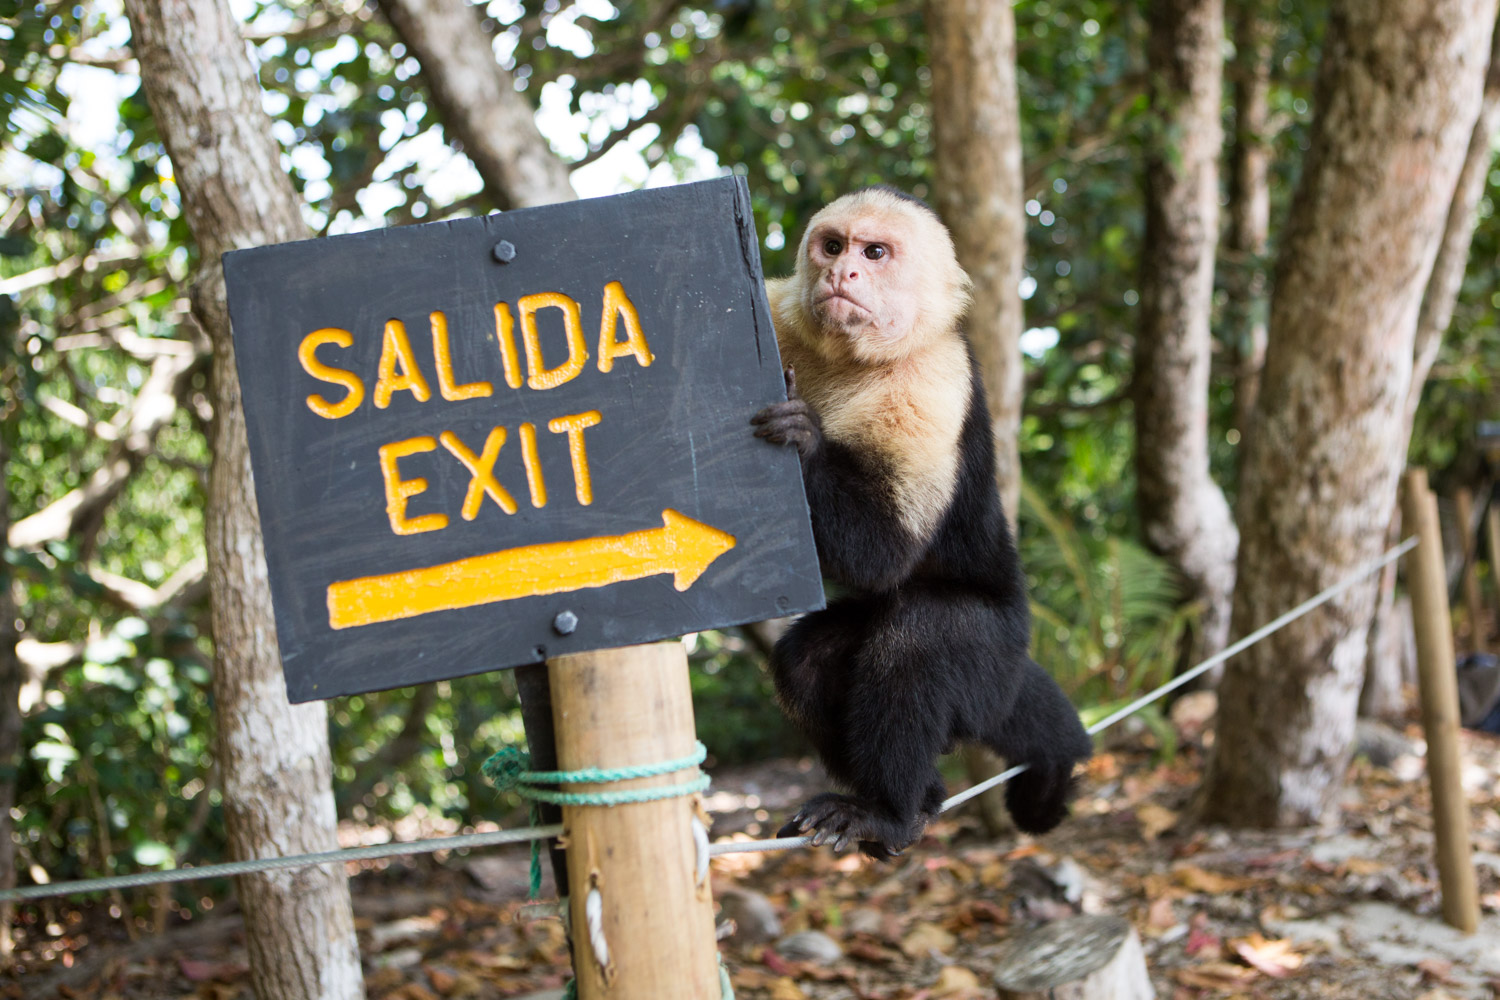 A white-faced capuchin monkey climbs on an exit sign in Manuel Antonio National Park.